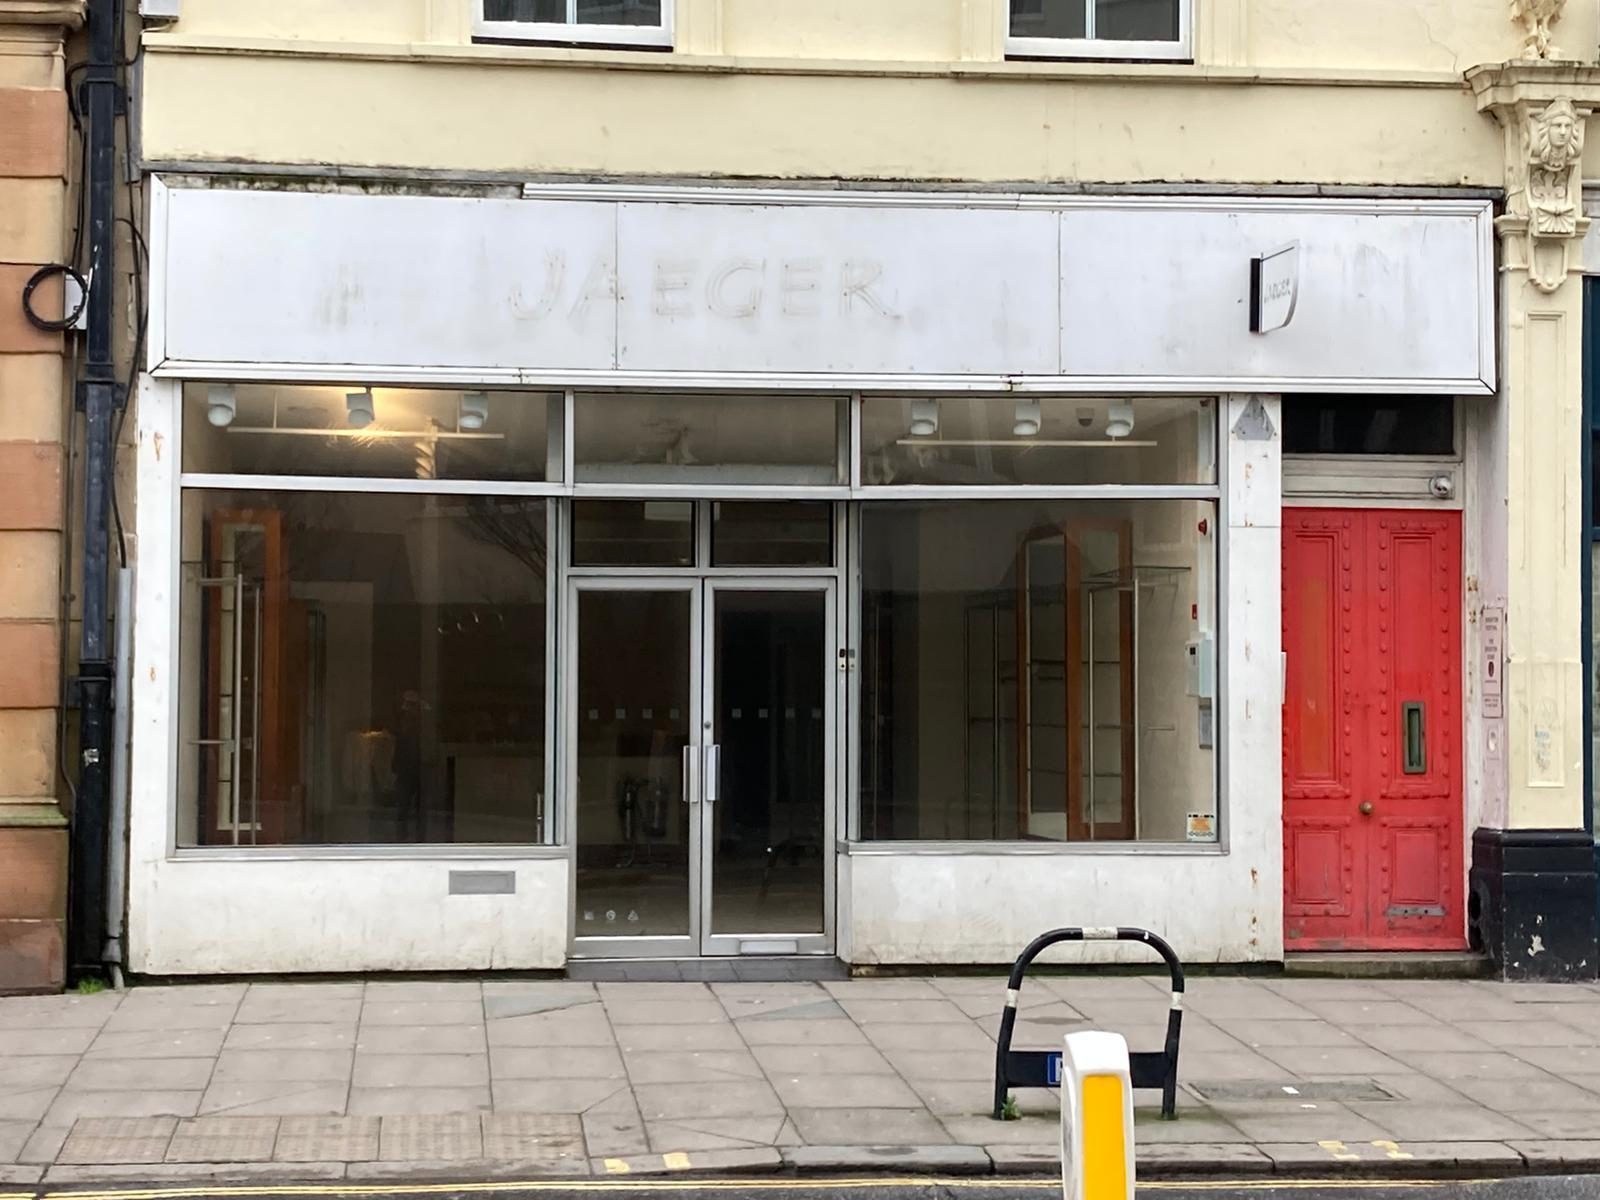 The future of the Peacocks and Jaeger stores in Brighton and Hove is uncertain